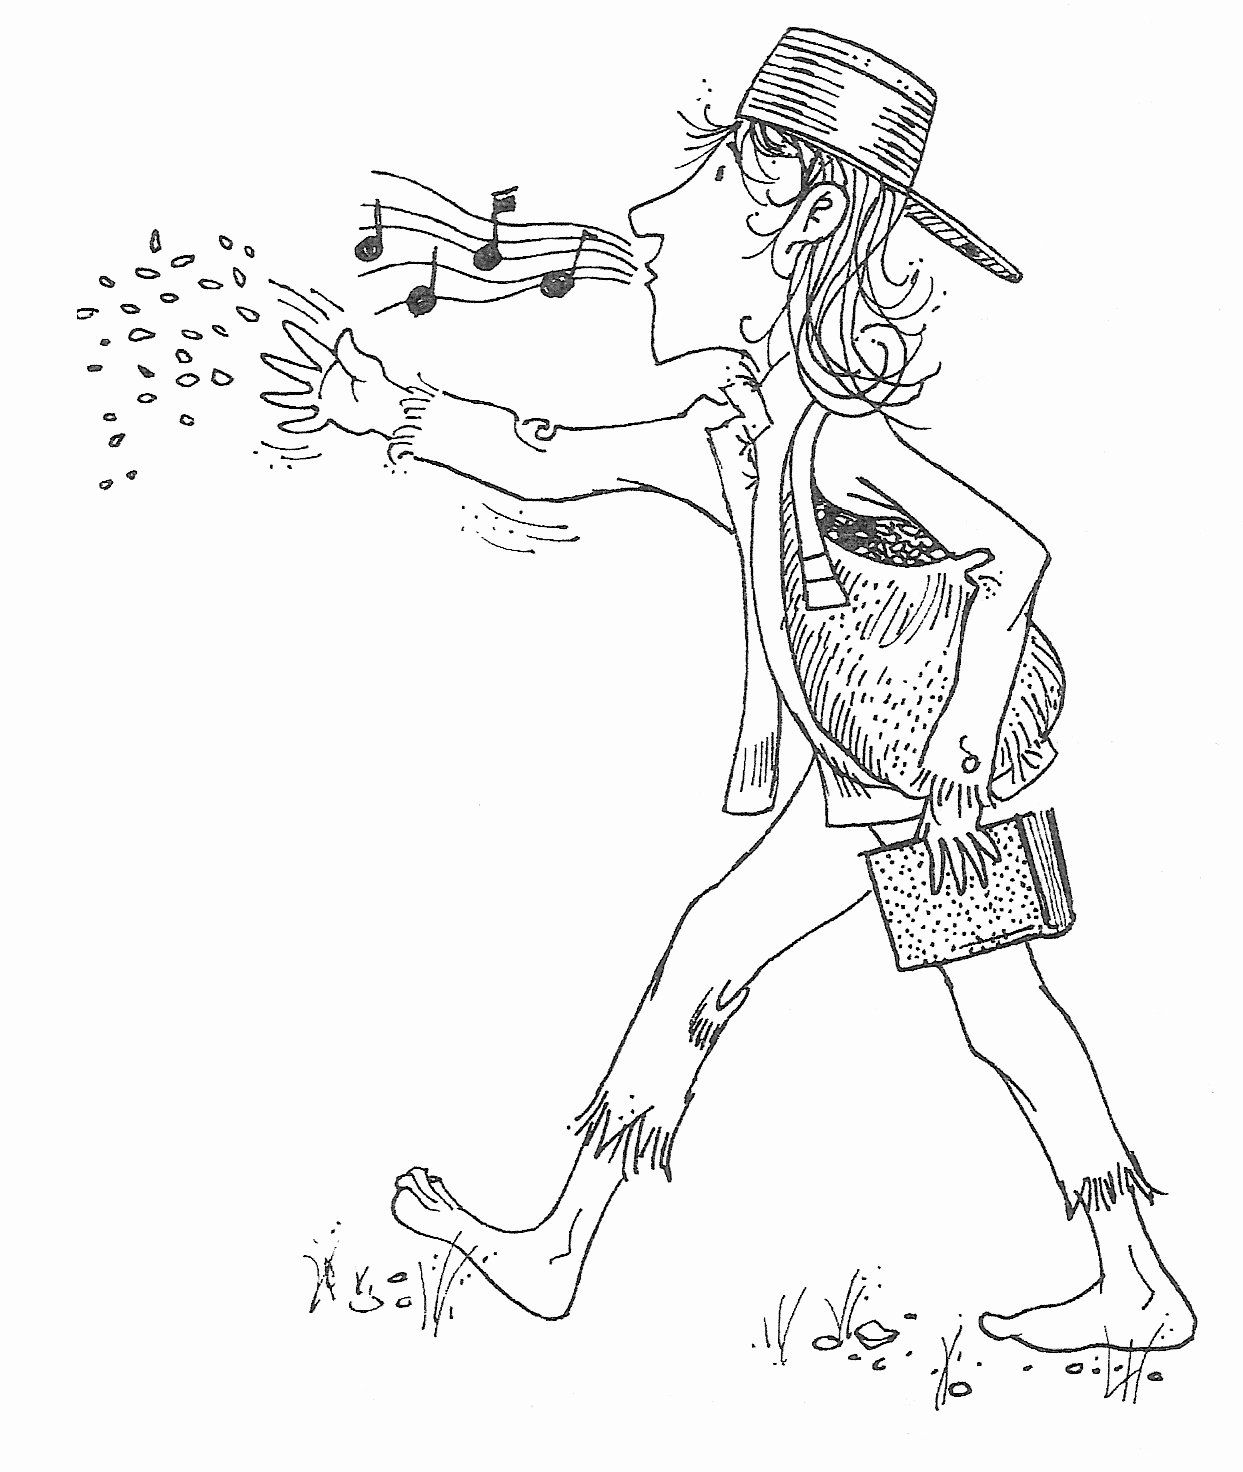 Johnny Appleseed Coloring Page New Johnny Appleseed Coloring Pages Best Coloring Pages For Kids In 2020 Coloring Pages Apple Coloring Pages Coloring Pages For Kids